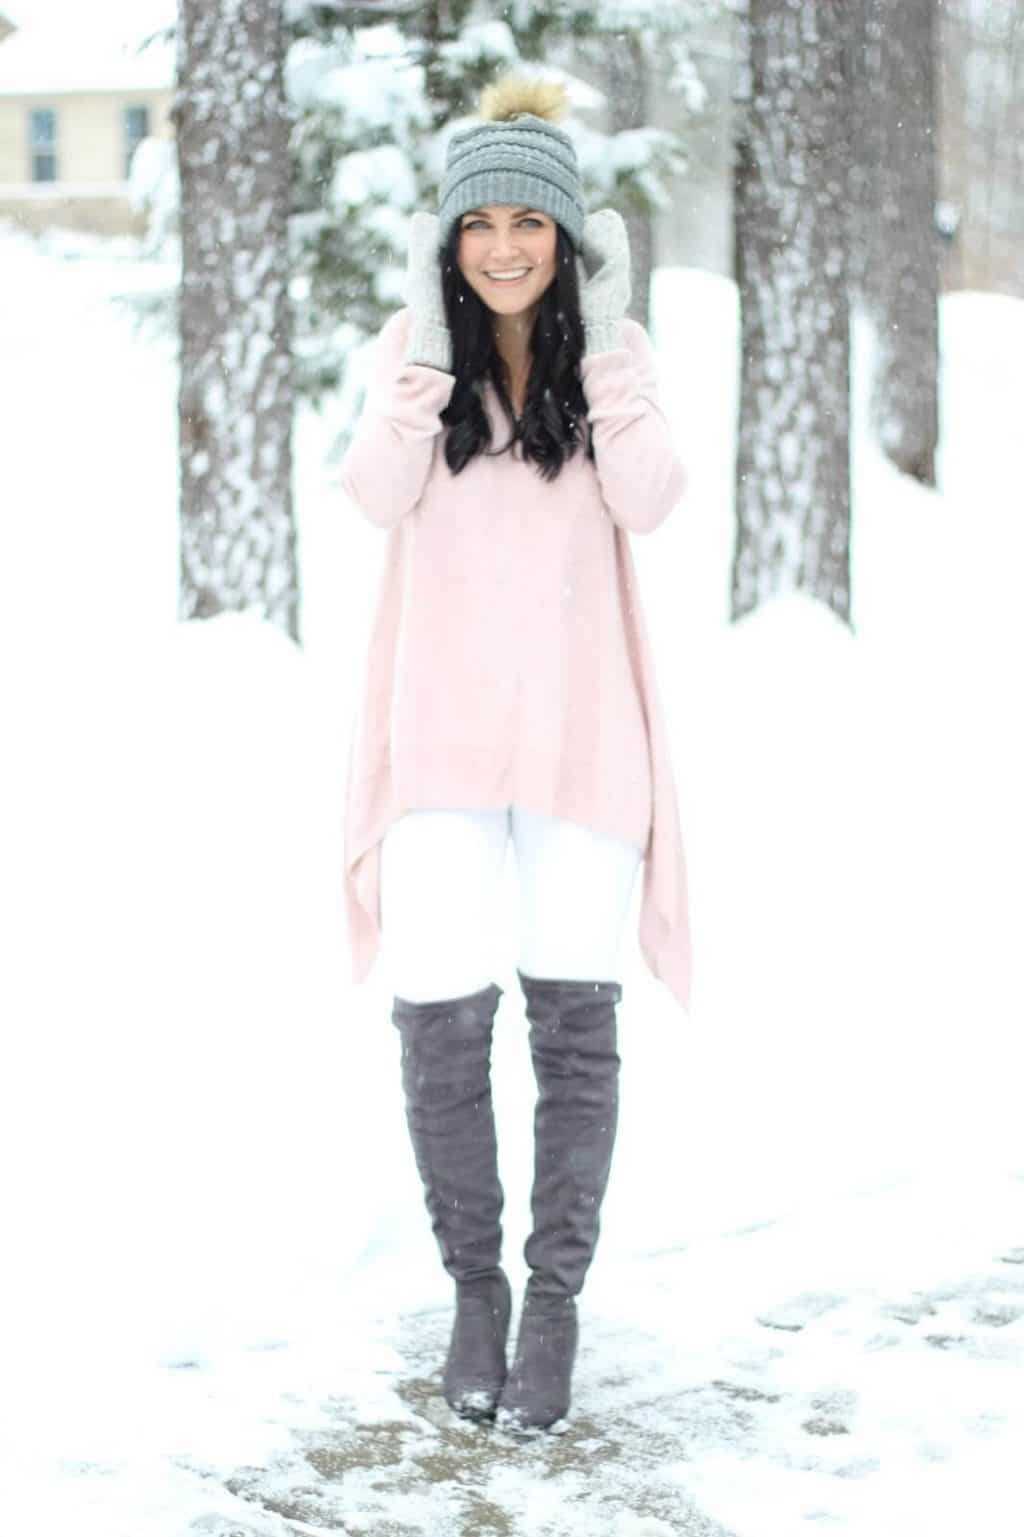 Pom beanie, white jeans, over the knee boots in the snow